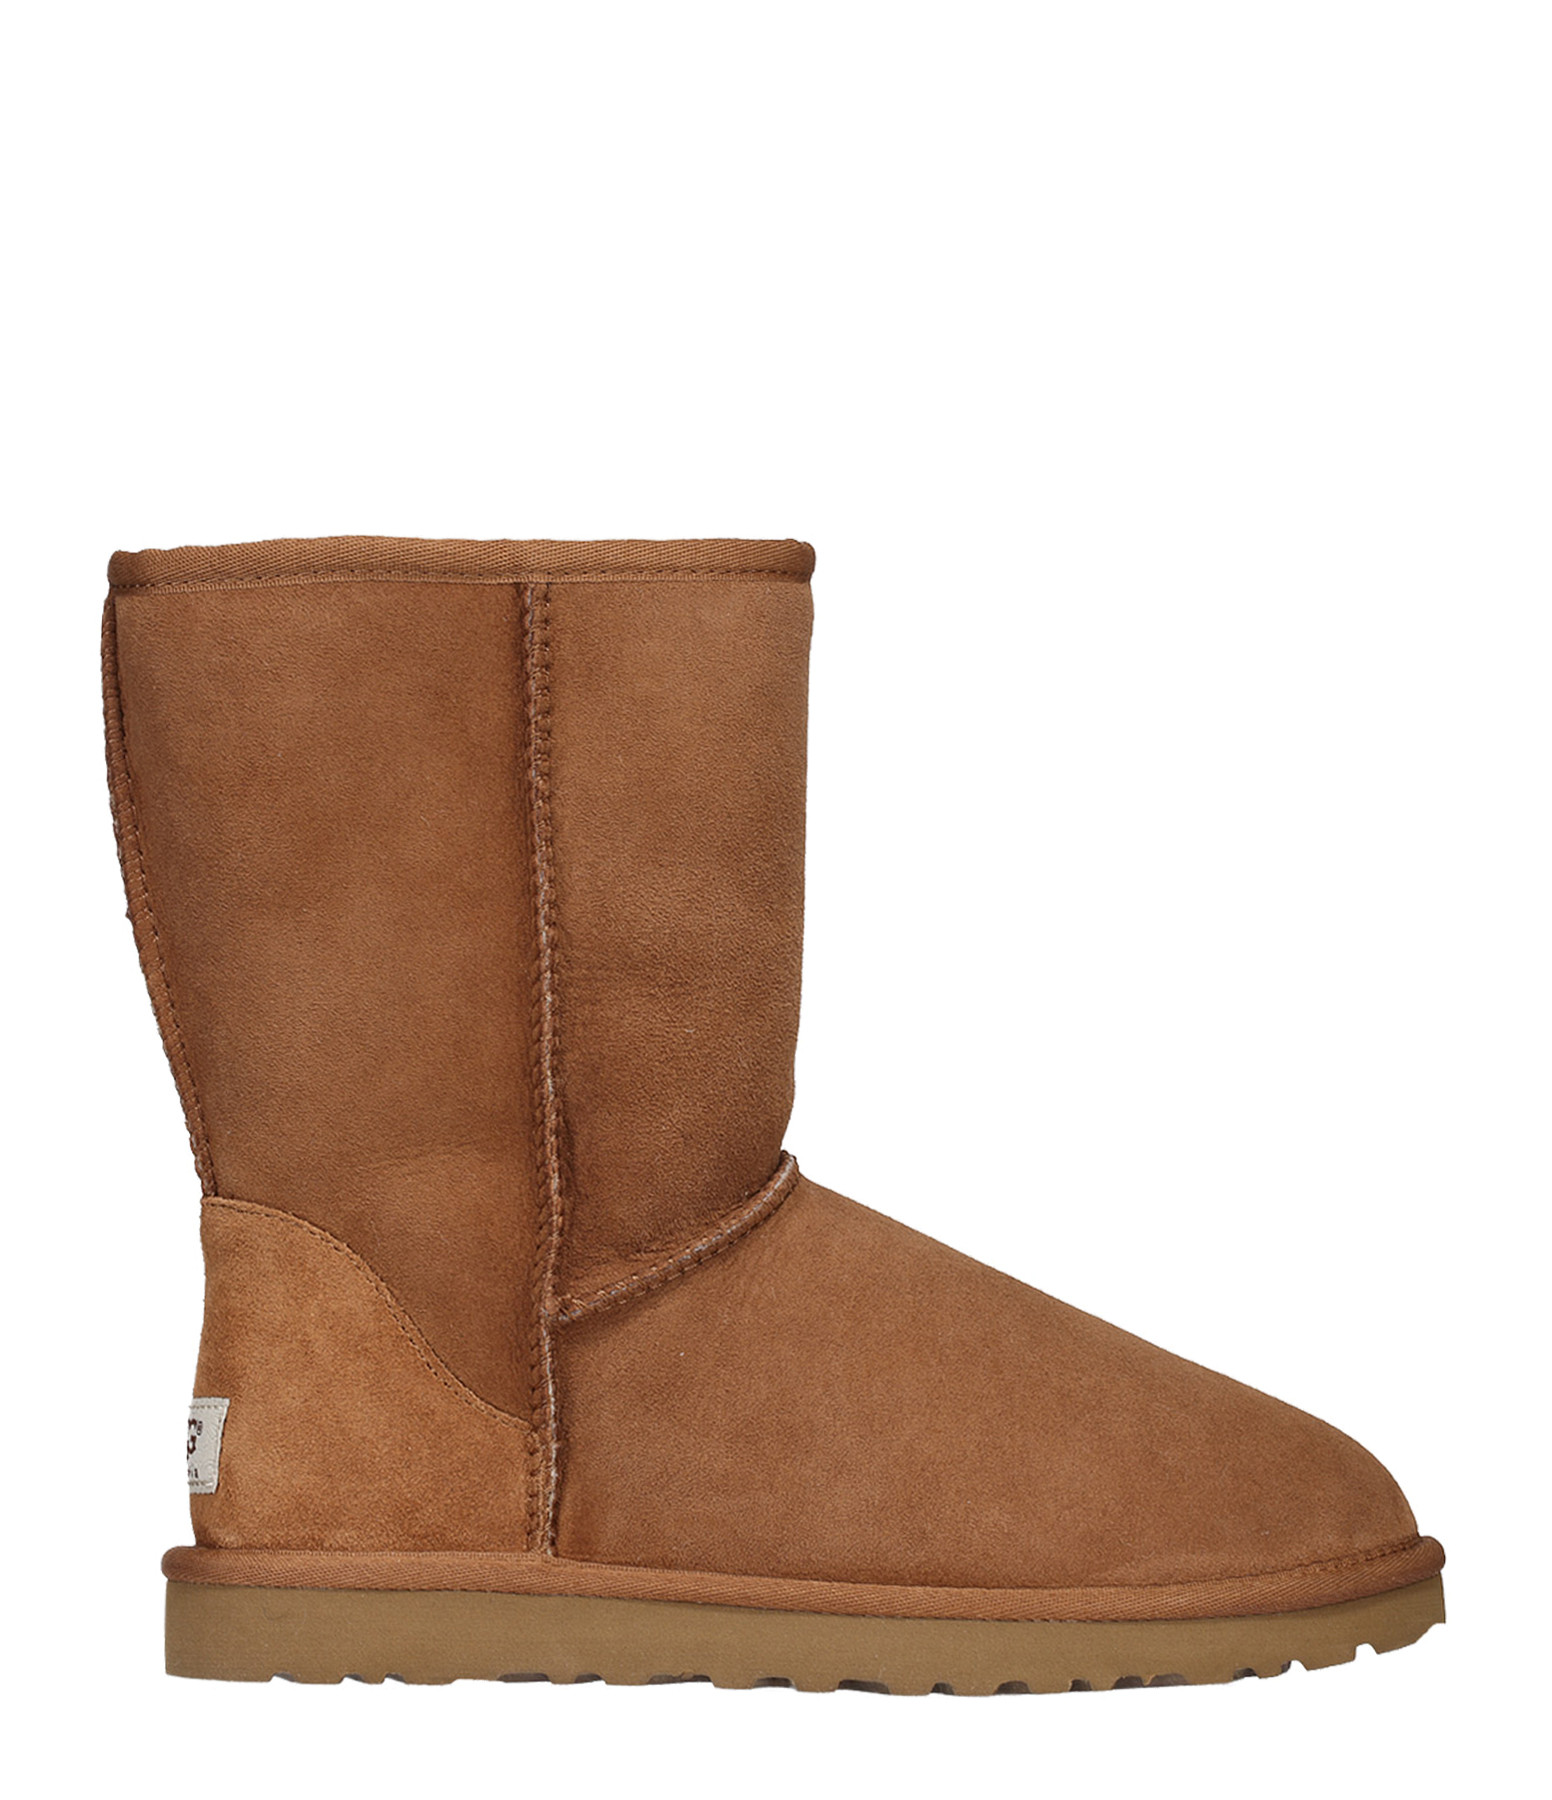 Boots Classic Short chestnut - UGG